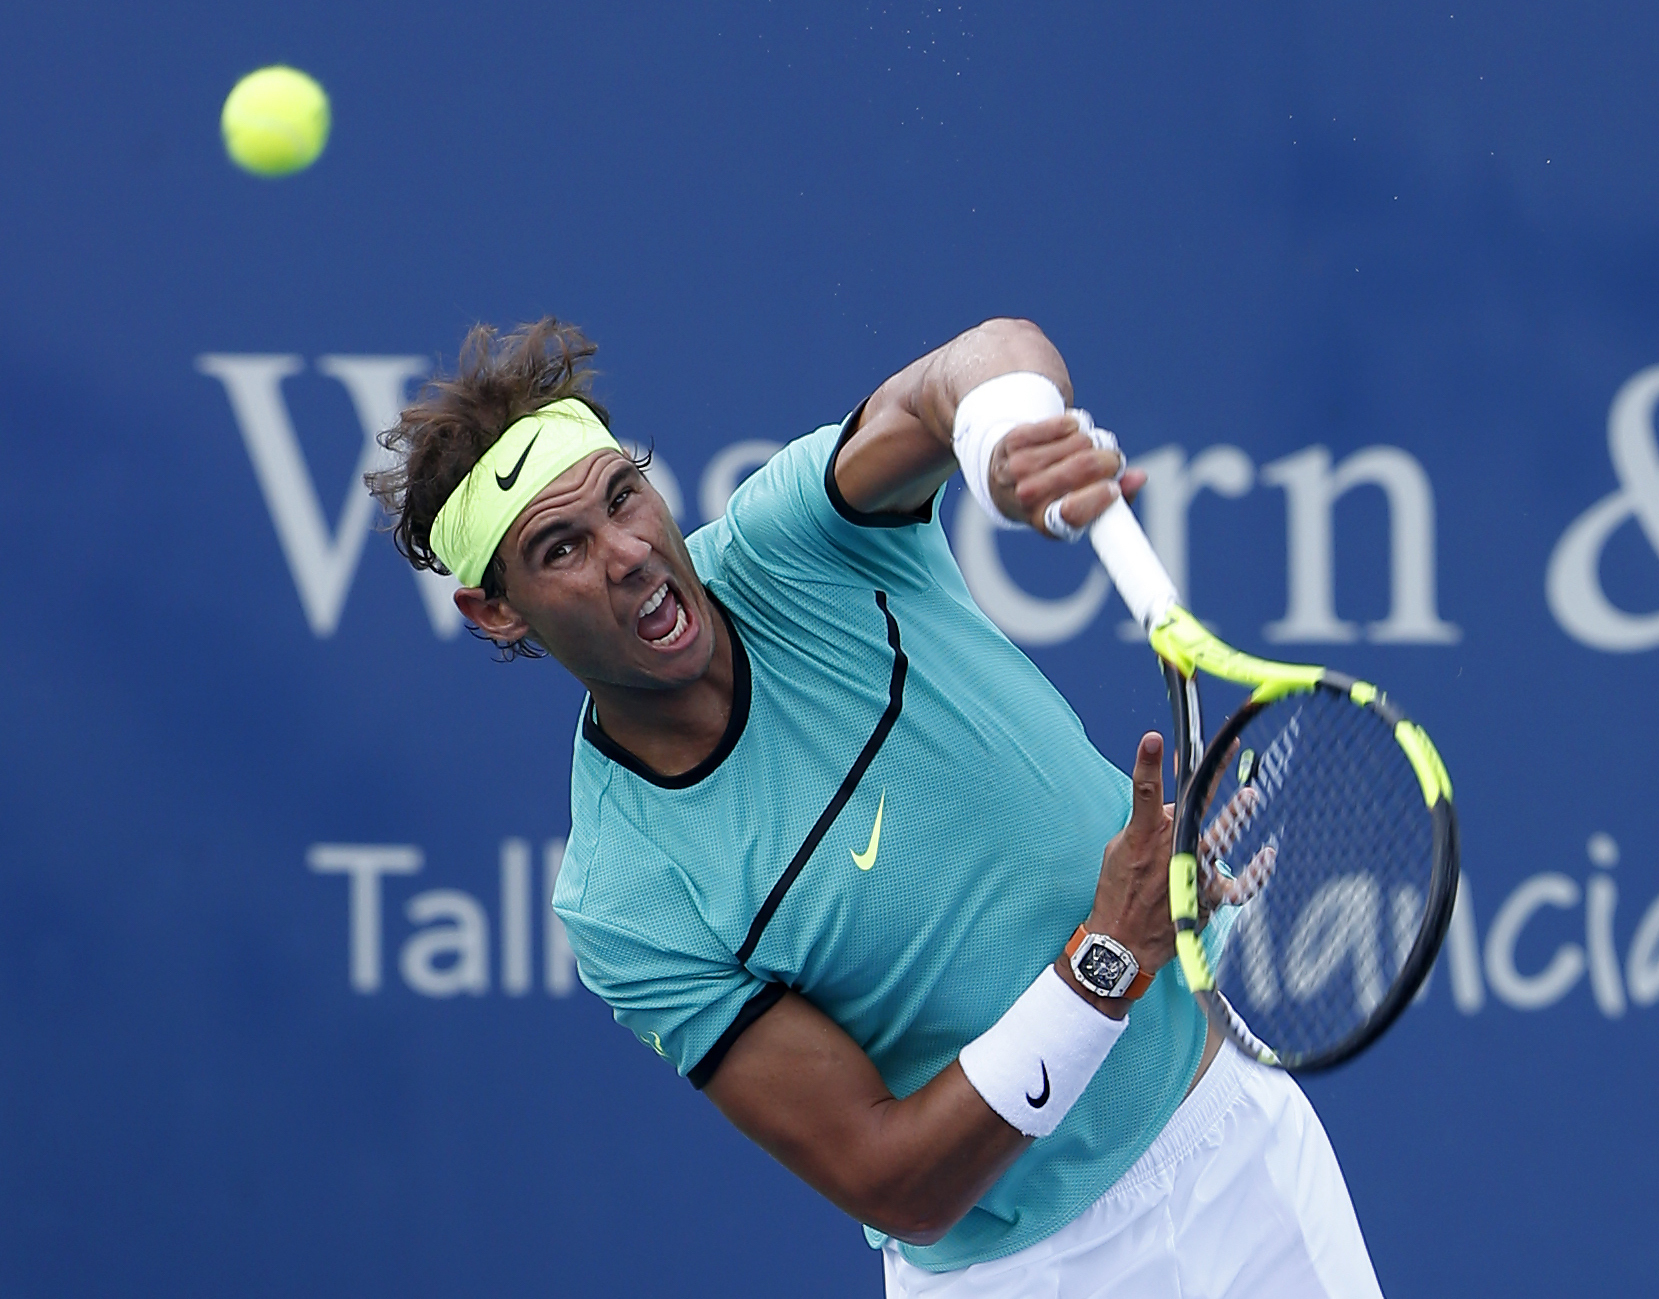 Rafael Nadal, from Spain, serves during a match against Borna Coric, from Croatia, at the Western & Southern Open tennis tournament, Thursday, Aug. 18, 2016, in Mason, Ohio. (AP Photo/Frank Victores)